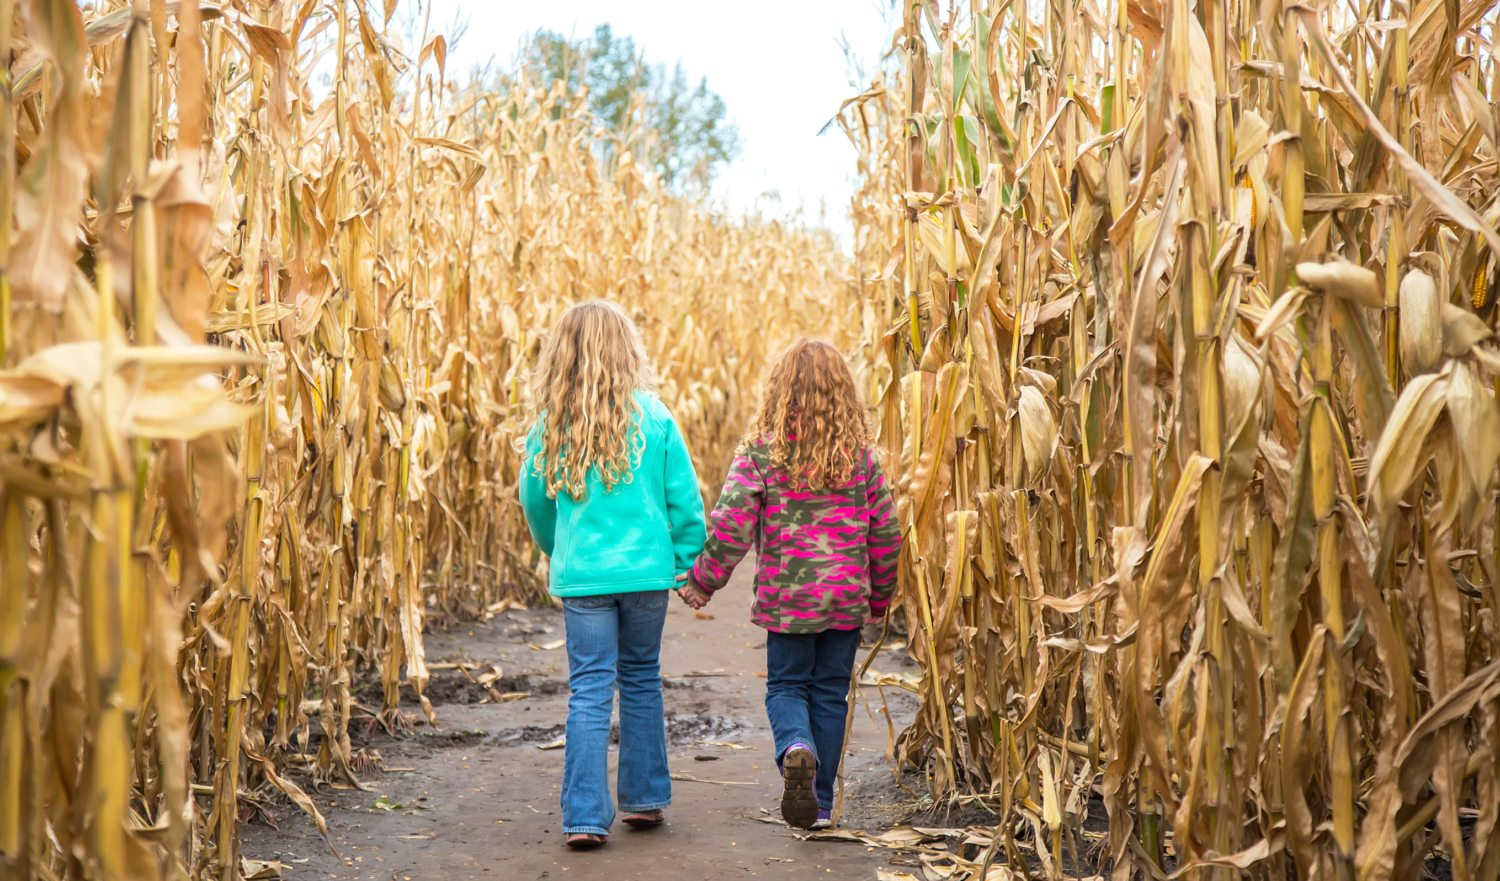 Rear view of two young girls (sisters) walking through a corn maze on a sunny autumn day. The older sister has curly blonde hair, and the younger sister has curly red hair. They are holding hands as they try to find their way through the maze. Both girls are wearing fleece jackets and denim blue jeans on this cool day in Minnesota, USA.